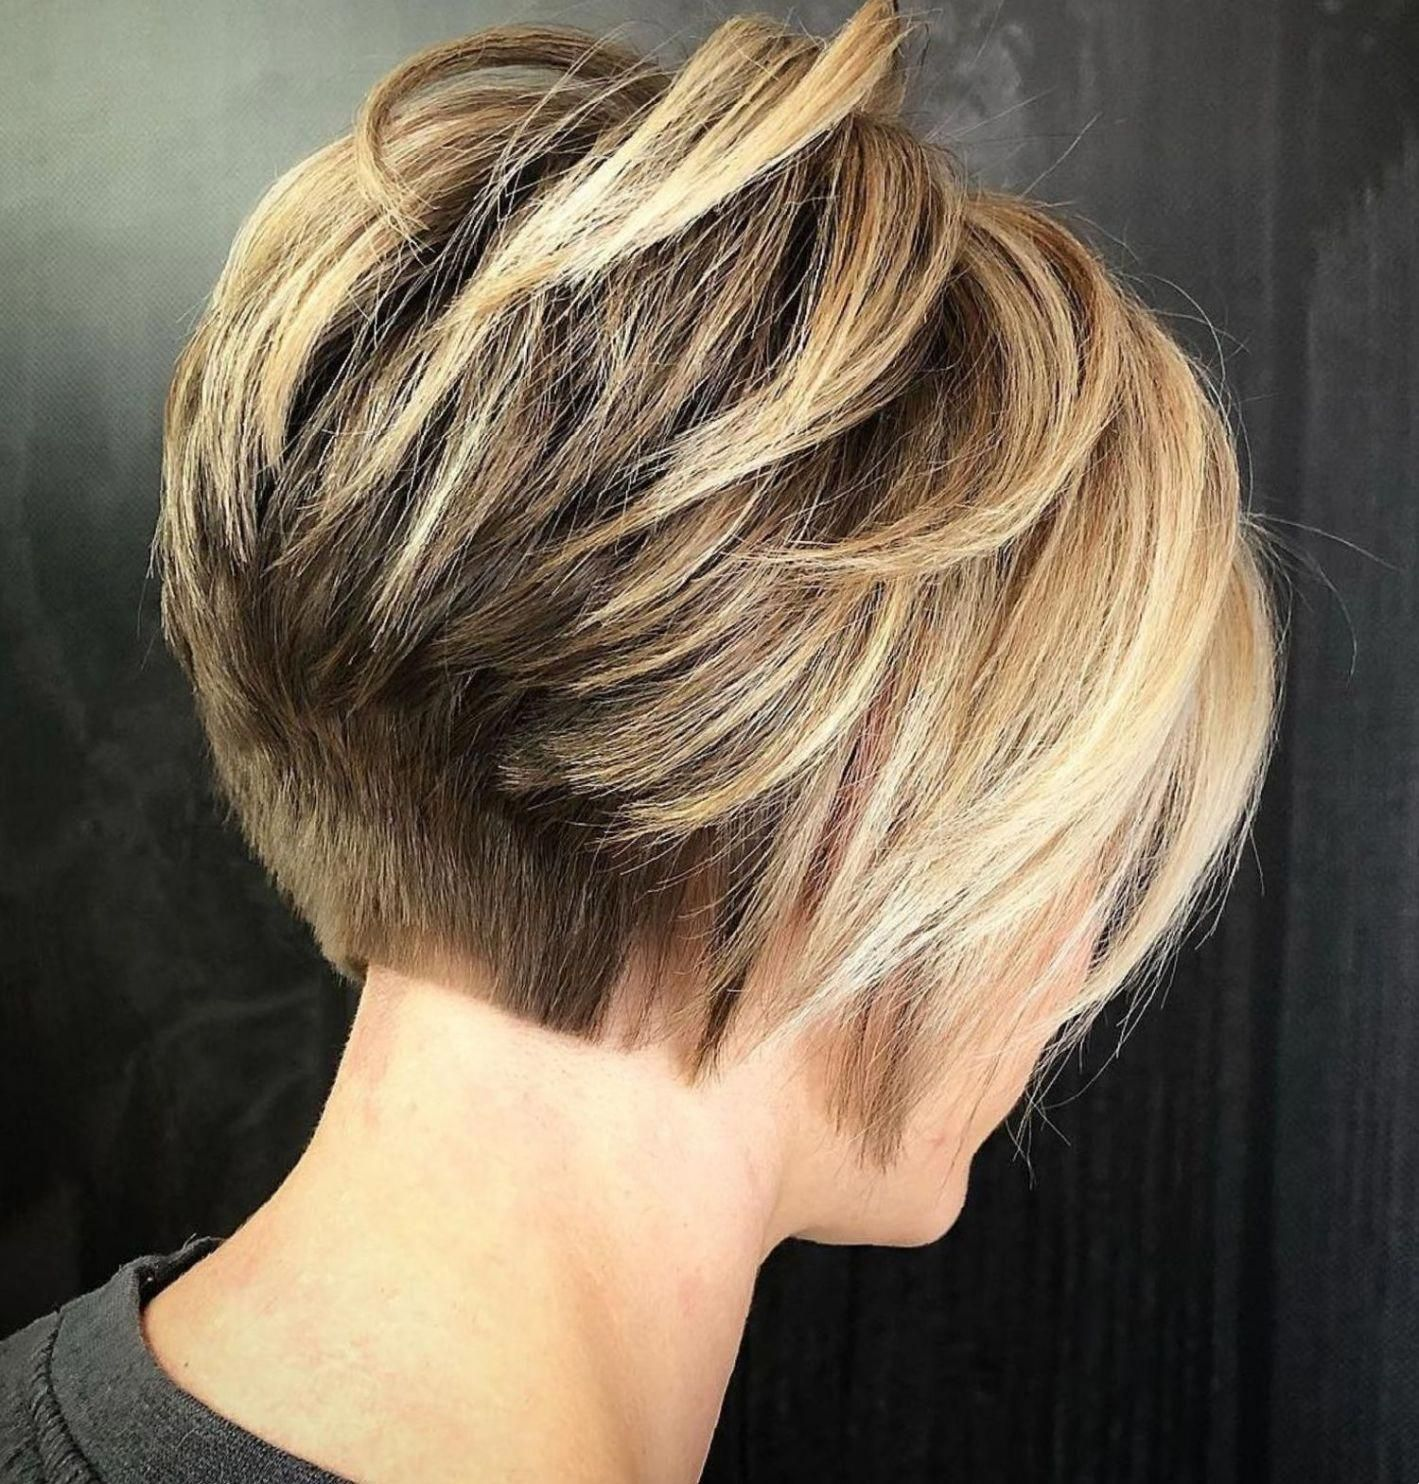 Short Stacked Bronde Bob For Thick Hair #shorthairbobpixie  Short